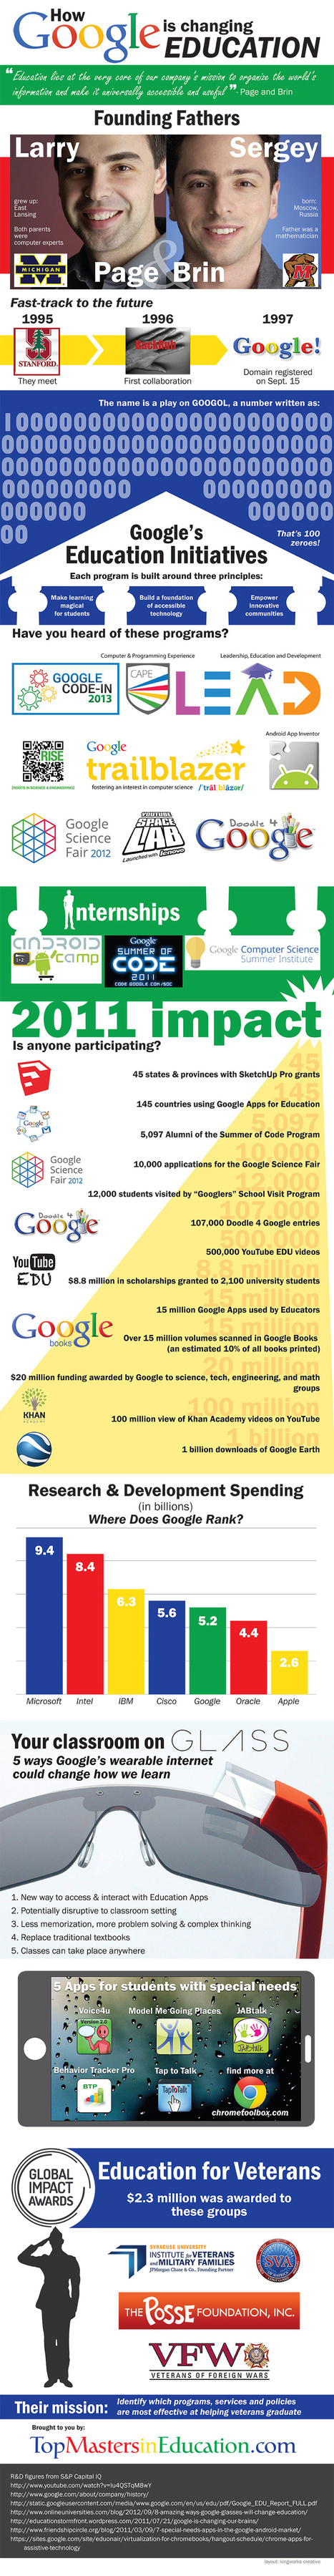 How Google Is Changing Education [INFOGRAPHIC] #Google #education | creativity and innovation | Scoop.it